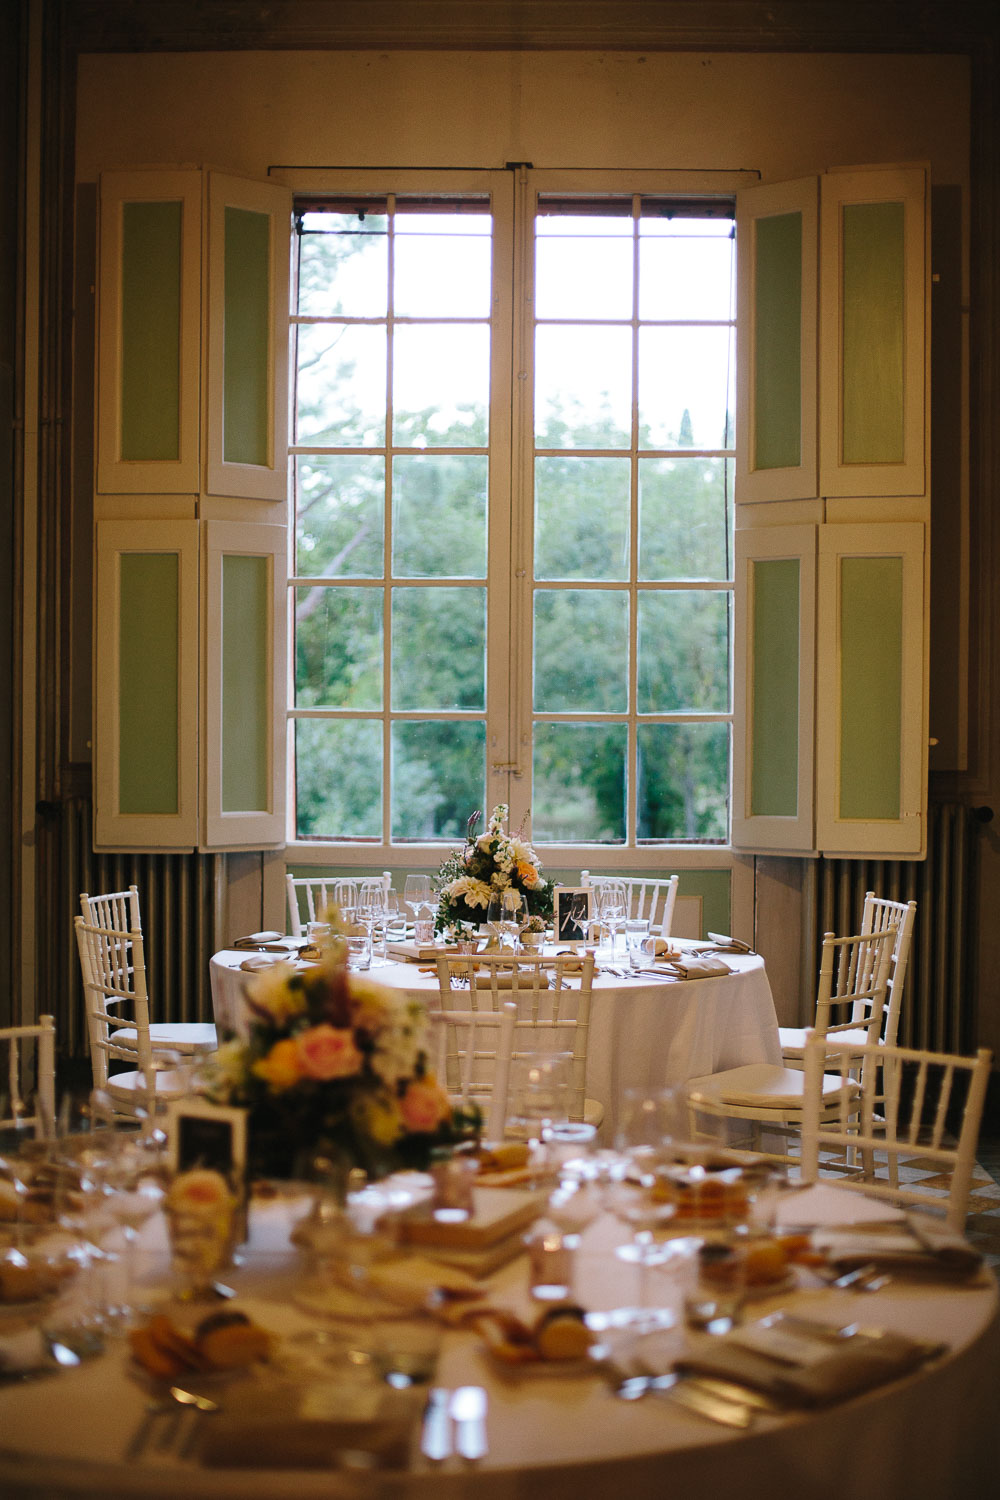 83-wedding-table.jpg